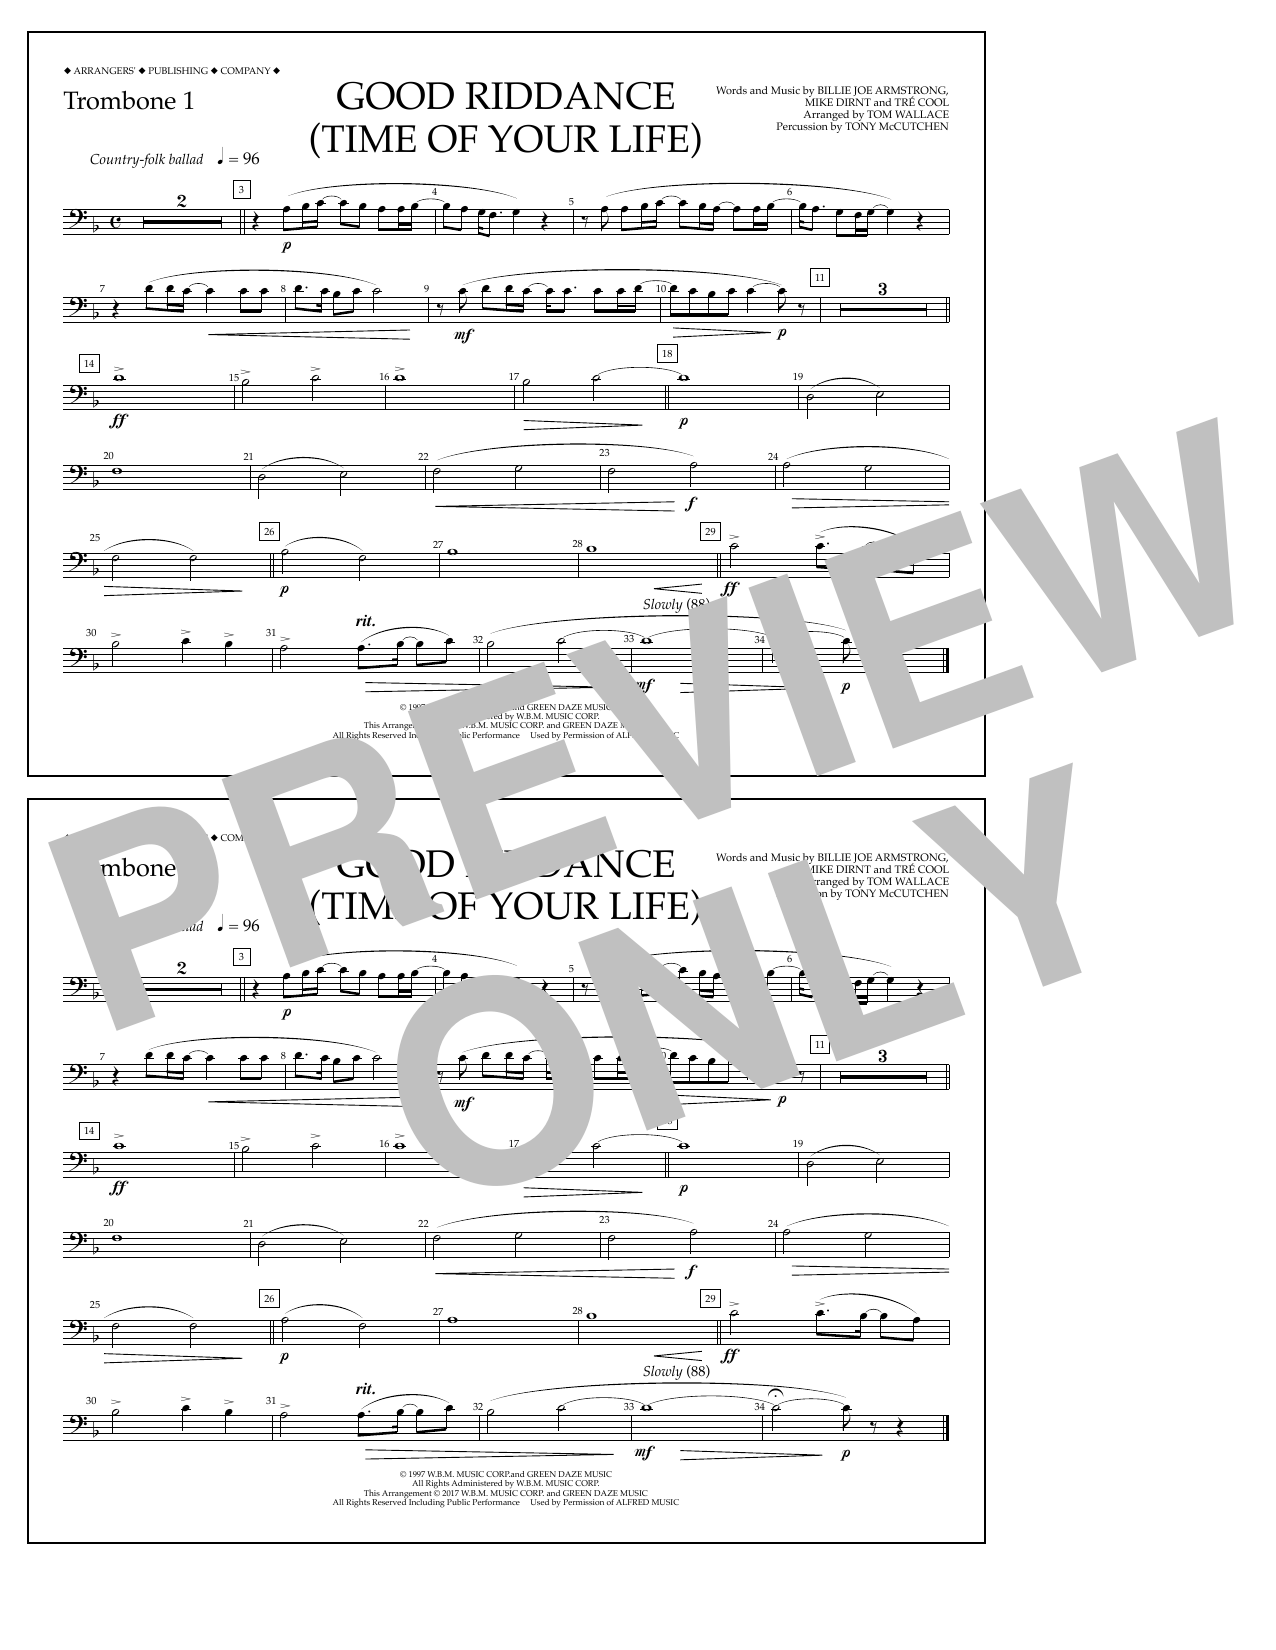 Good Riddance (Time of Your Life) - Trombone 1 Sheet Music